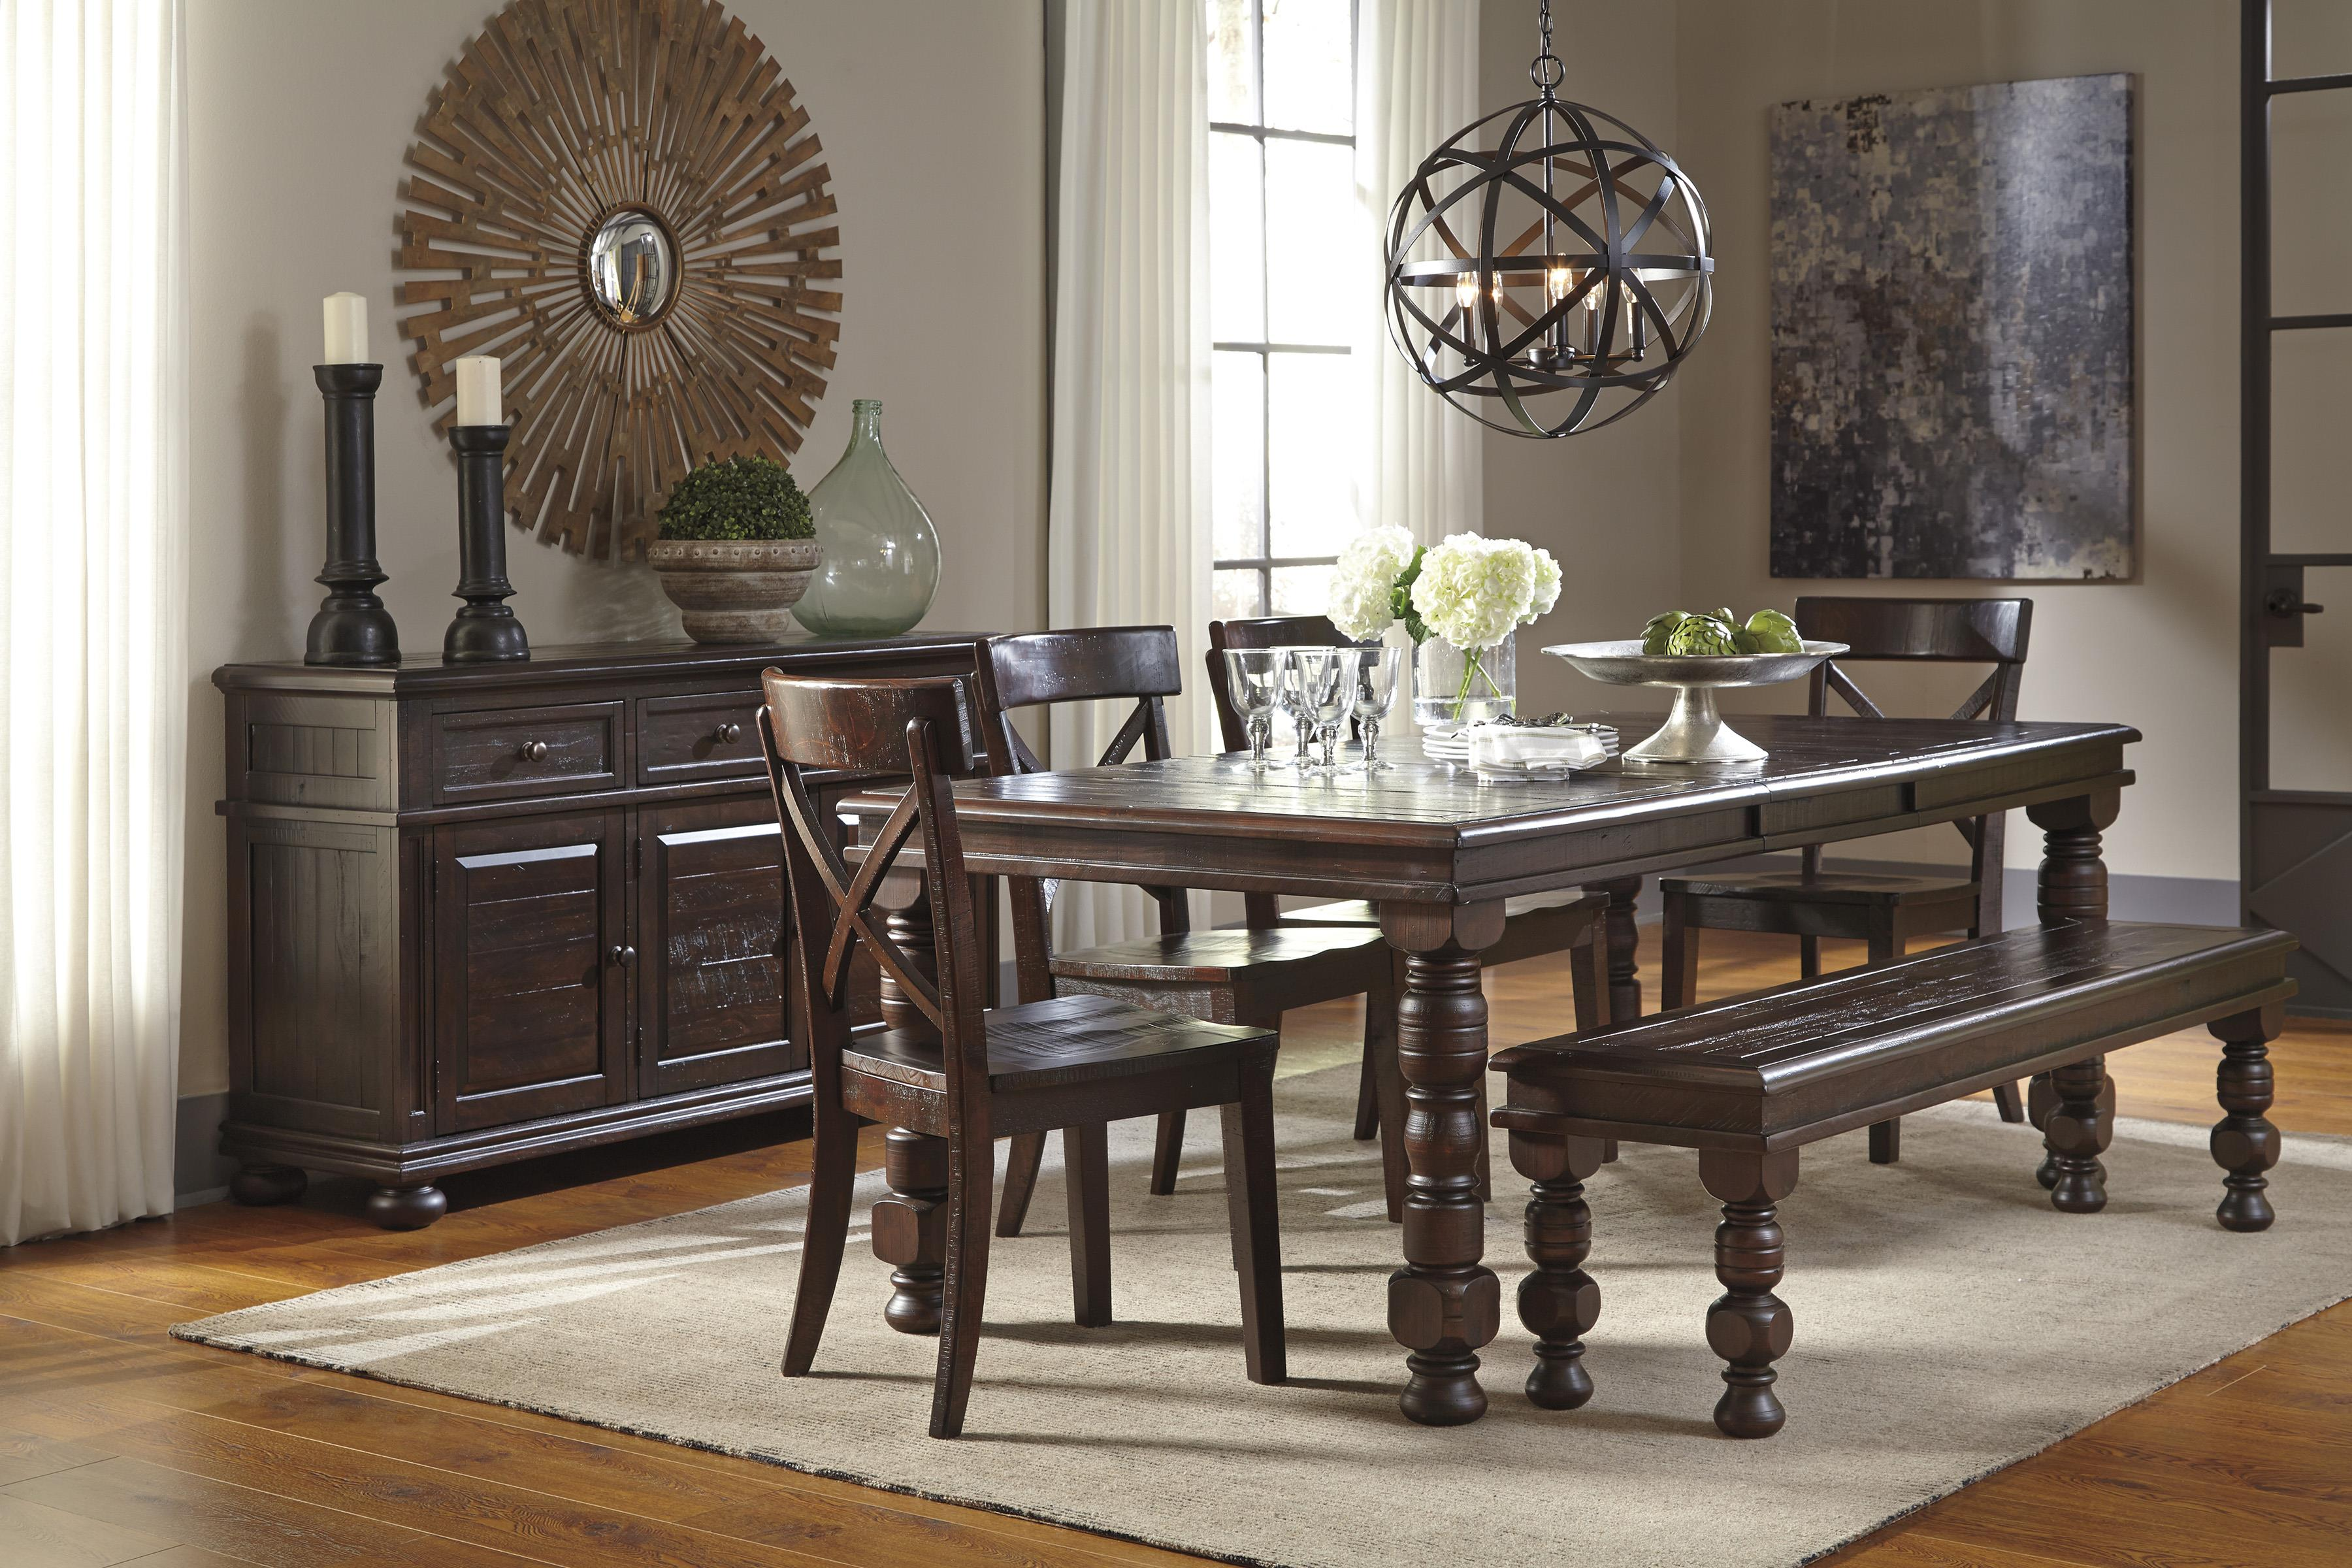 Signature Design by Ashley Gerlane Casual Dining Room Group - Item Number: D657 Dining Room Group 2